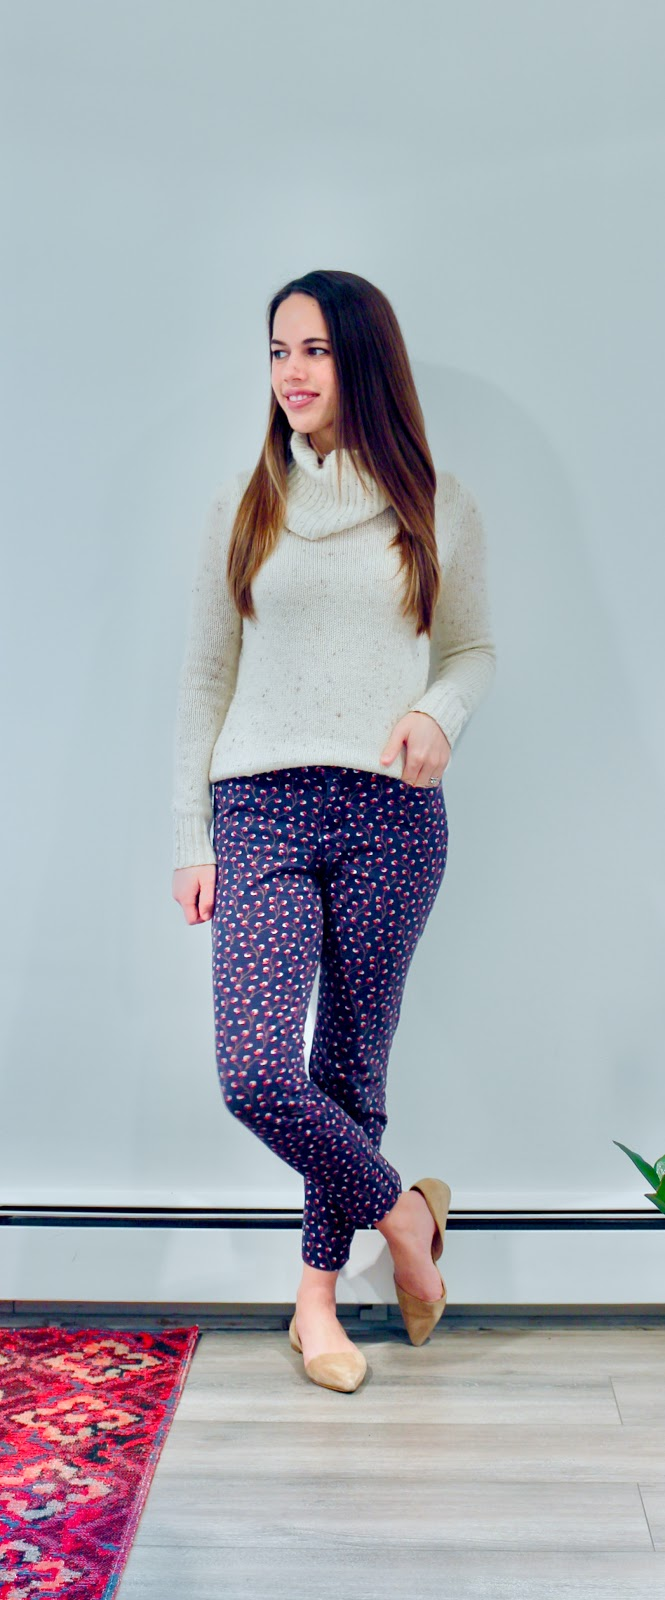 Jules in Flats - Marled Turtleneck Sweater with Patterned Pixie Pants (Business Casual Winter Workwear on a Budget)